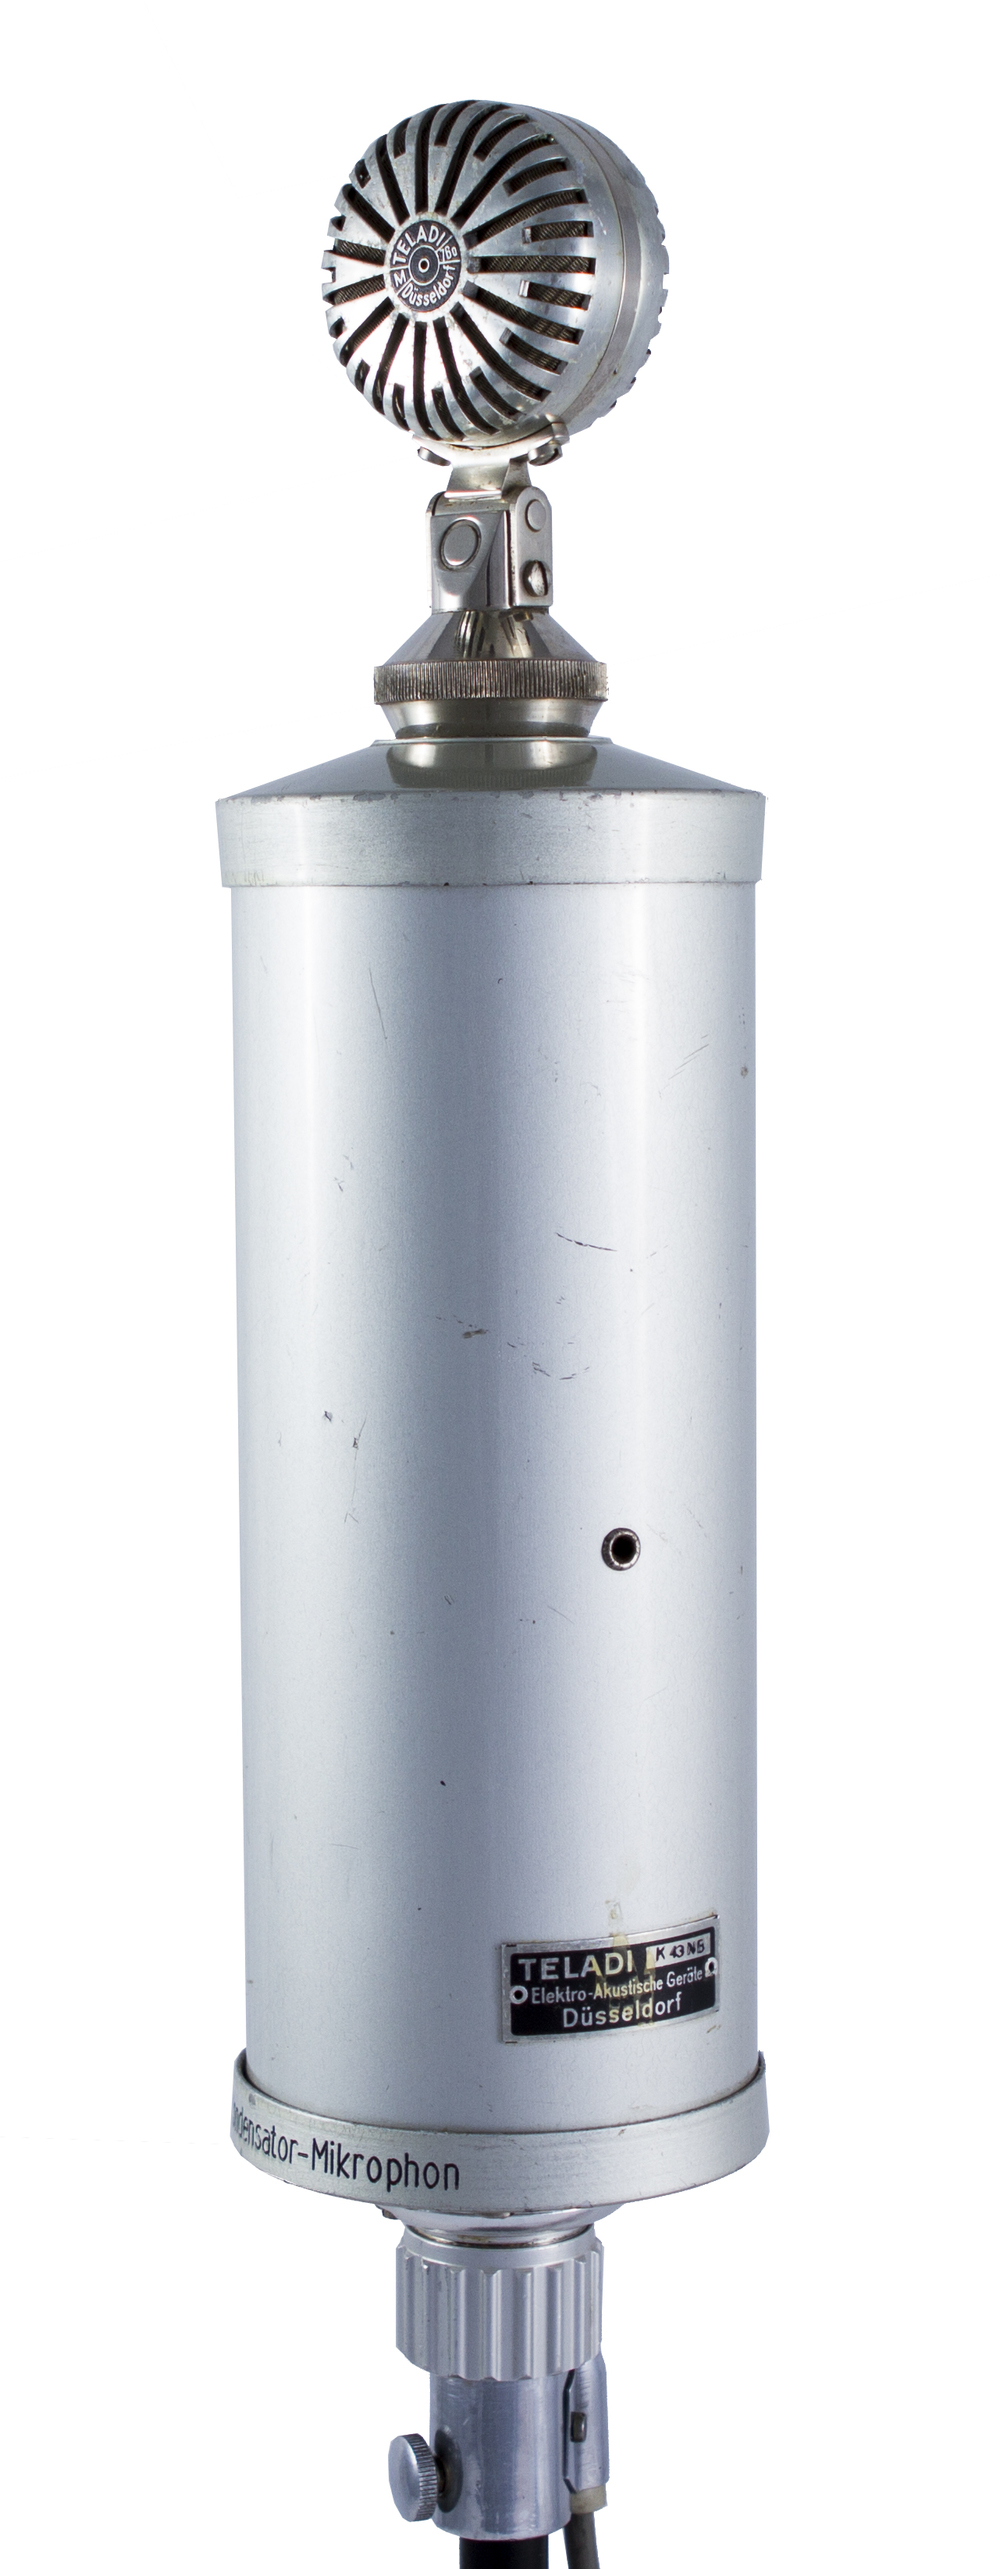 Teladi Bottle Mic.jpg